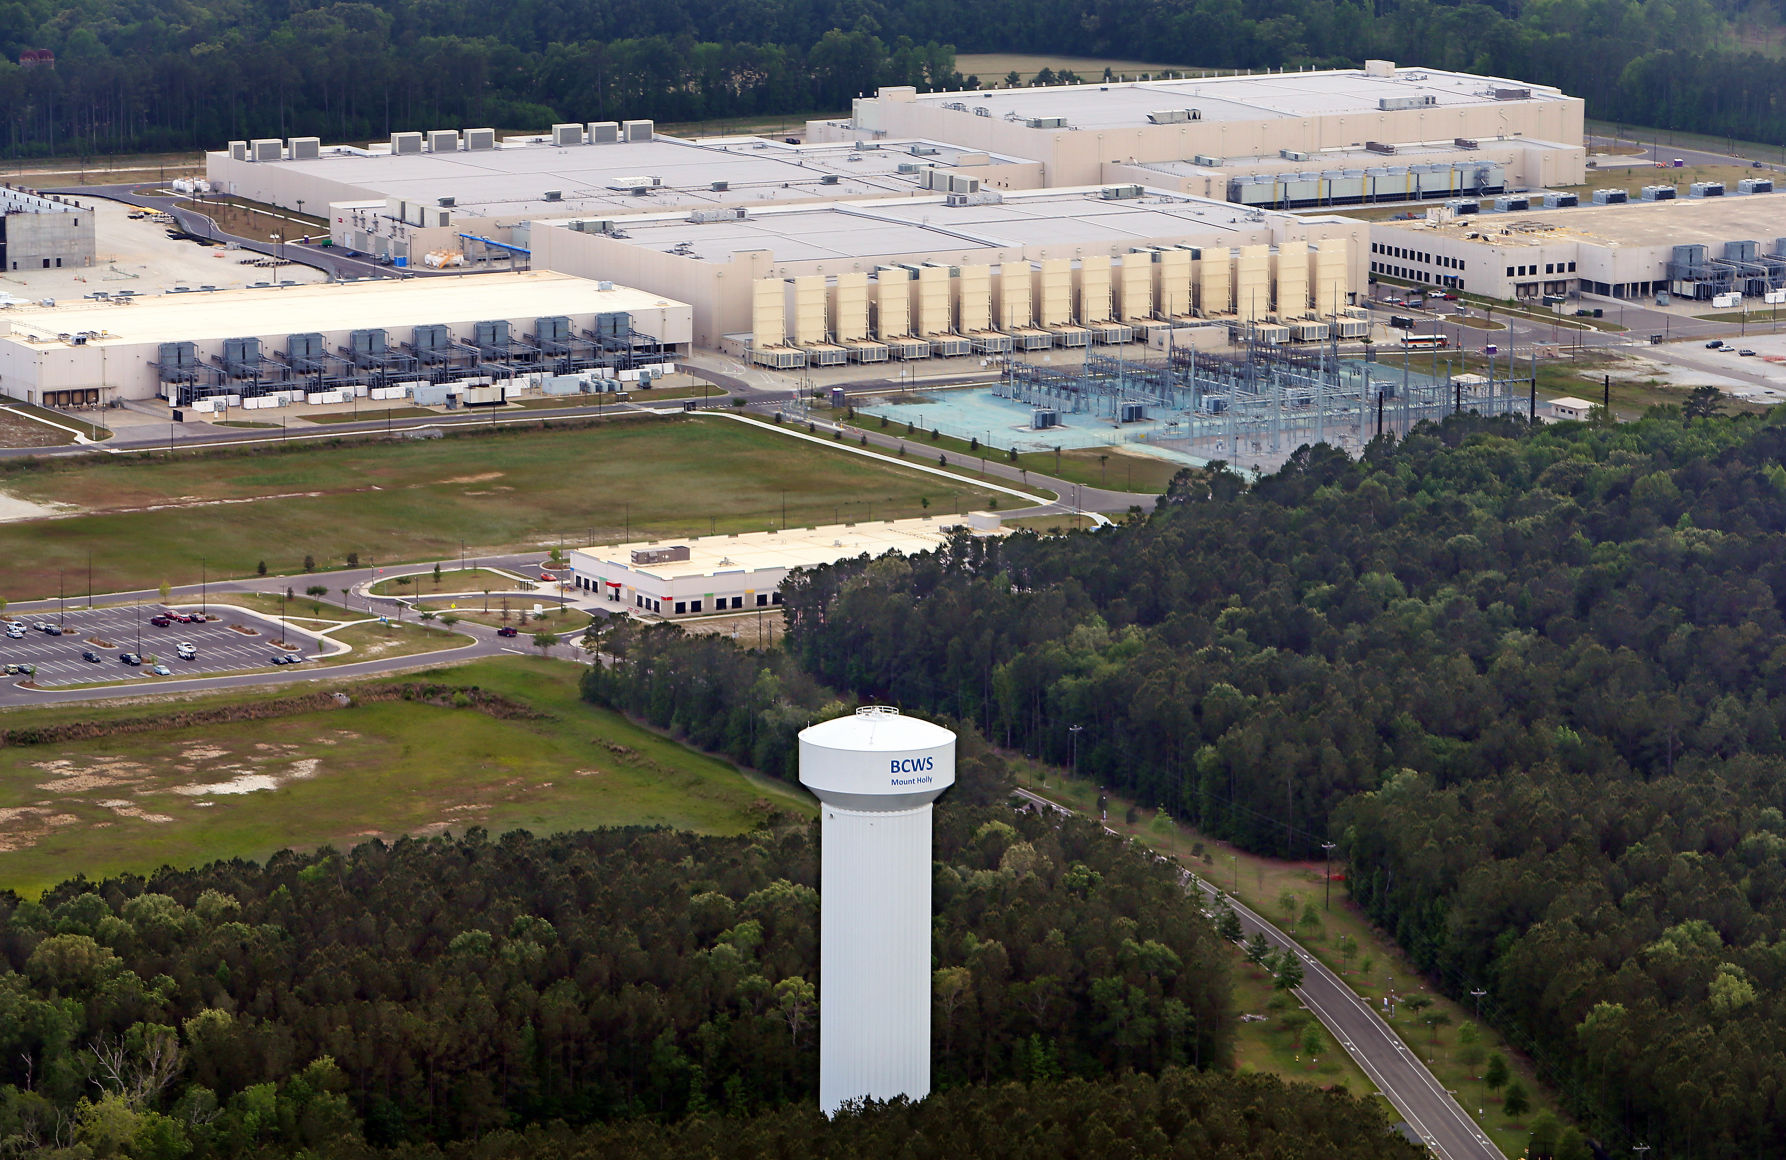 postandcourier.com - Bo Petersen bopete@postandcourier.com - Google's controversial groundwater withdrawal sparks question of who owns South Carolina water